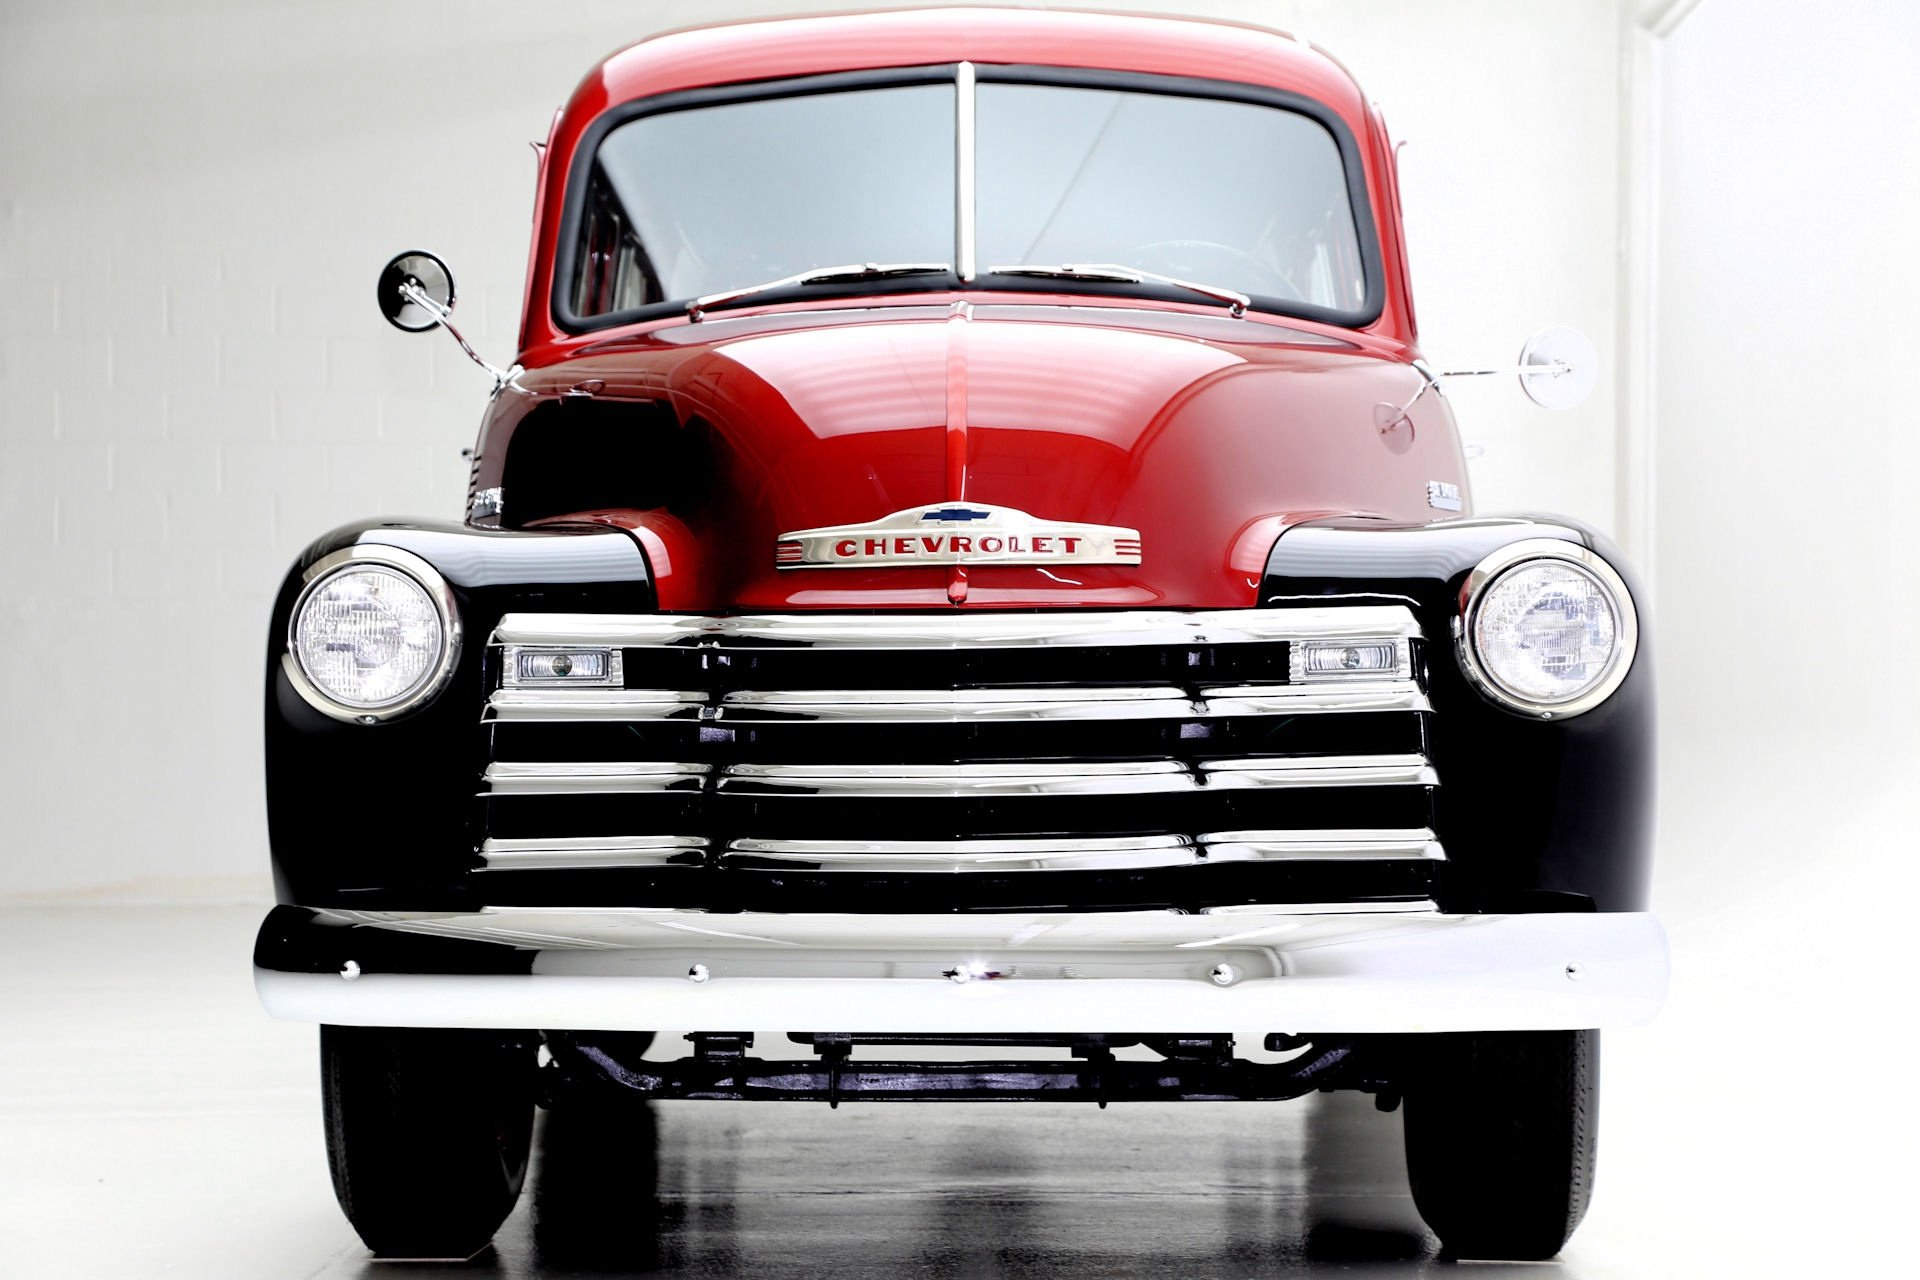 1951 Chevrolet Suburban 3100 Bordeaux Suv Truck Retro Stationwagon Station Wagon Wallpaper 1920x1280 854500 Wallpaperup